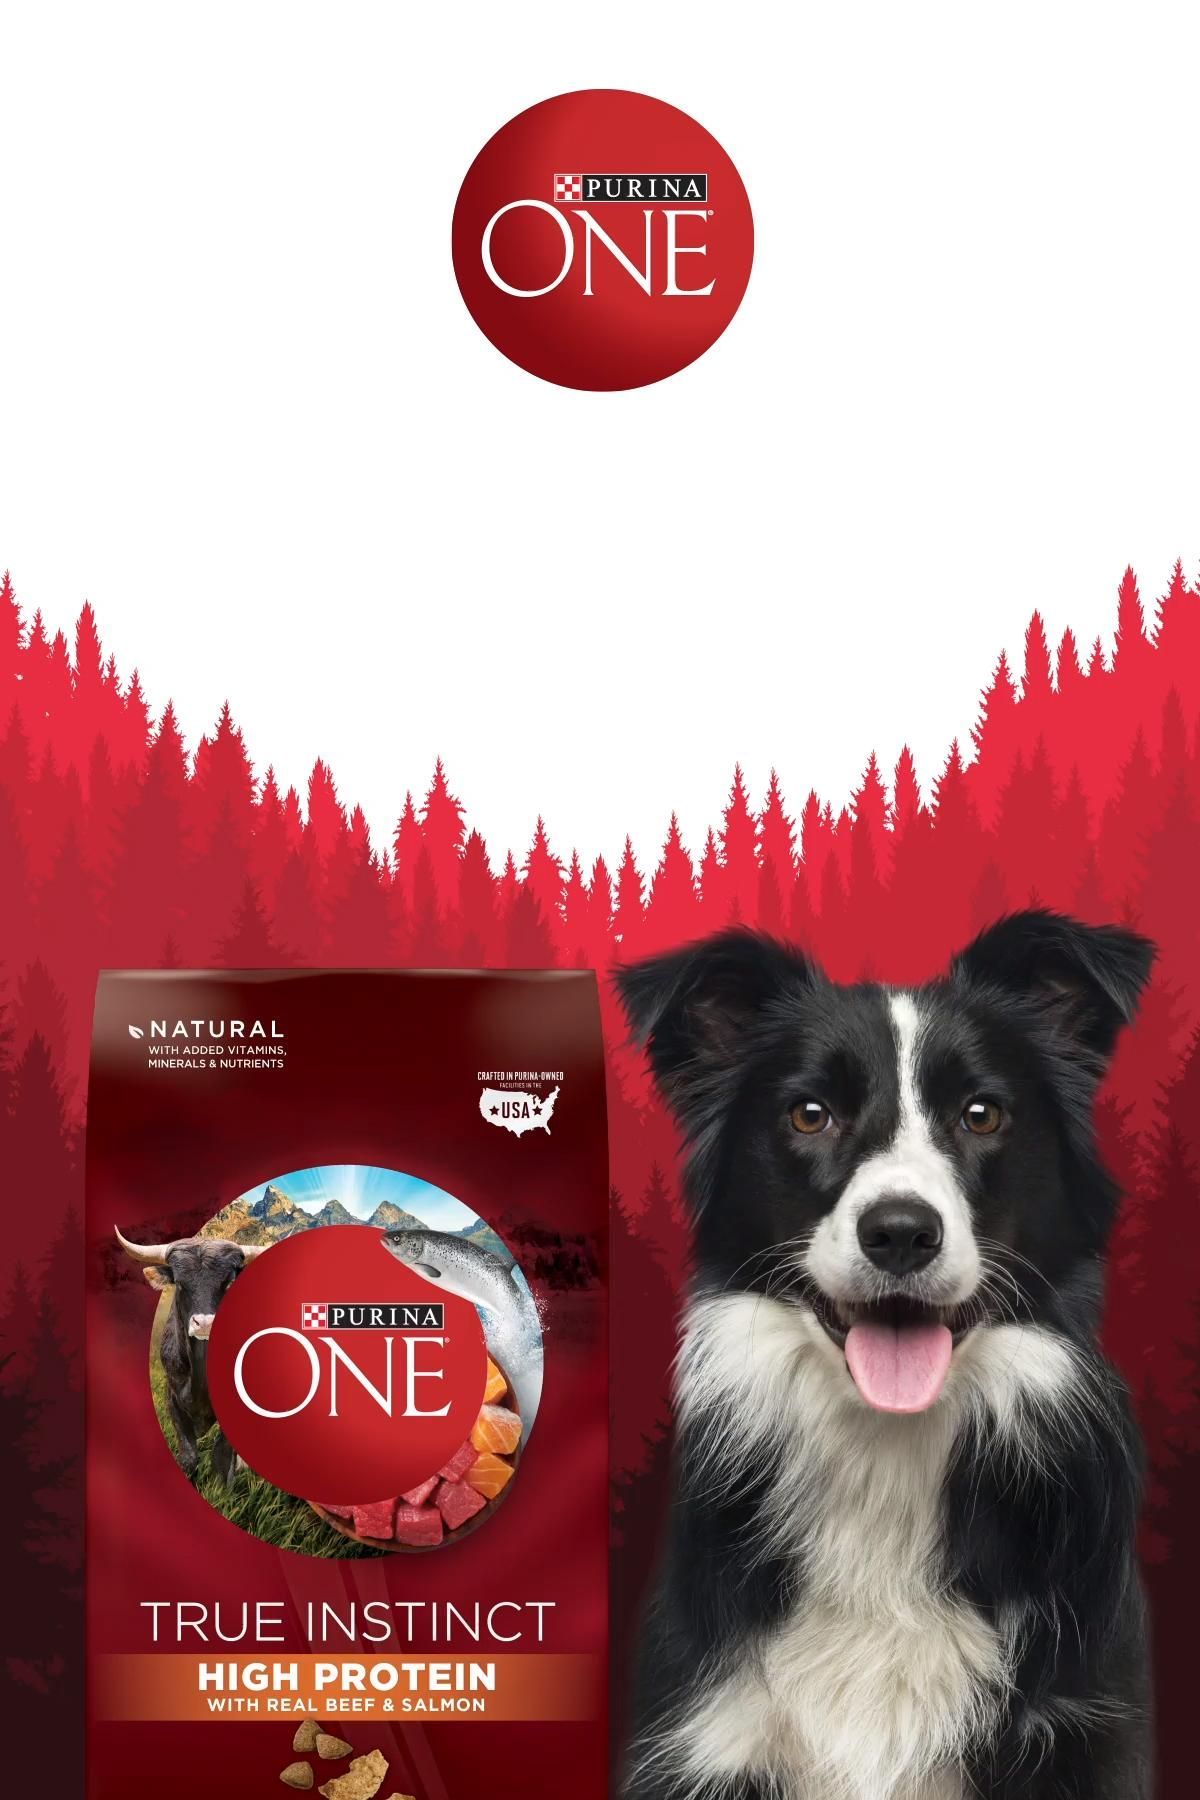 Inspired by a dog's instinct to choose nutrient-dense foods in nature, Purina ONE® True Instinct High Protein was created with 32% protein, including real beef as the #1 ingredient, with a SmartBlend of real salmon and other ingredients to provide the protein, energy and other nutrients active adult dogs need. Nature plus science helps provide 100% complete and balanced nutrition to support whole body health while satisfying your active dog's natural instinct.